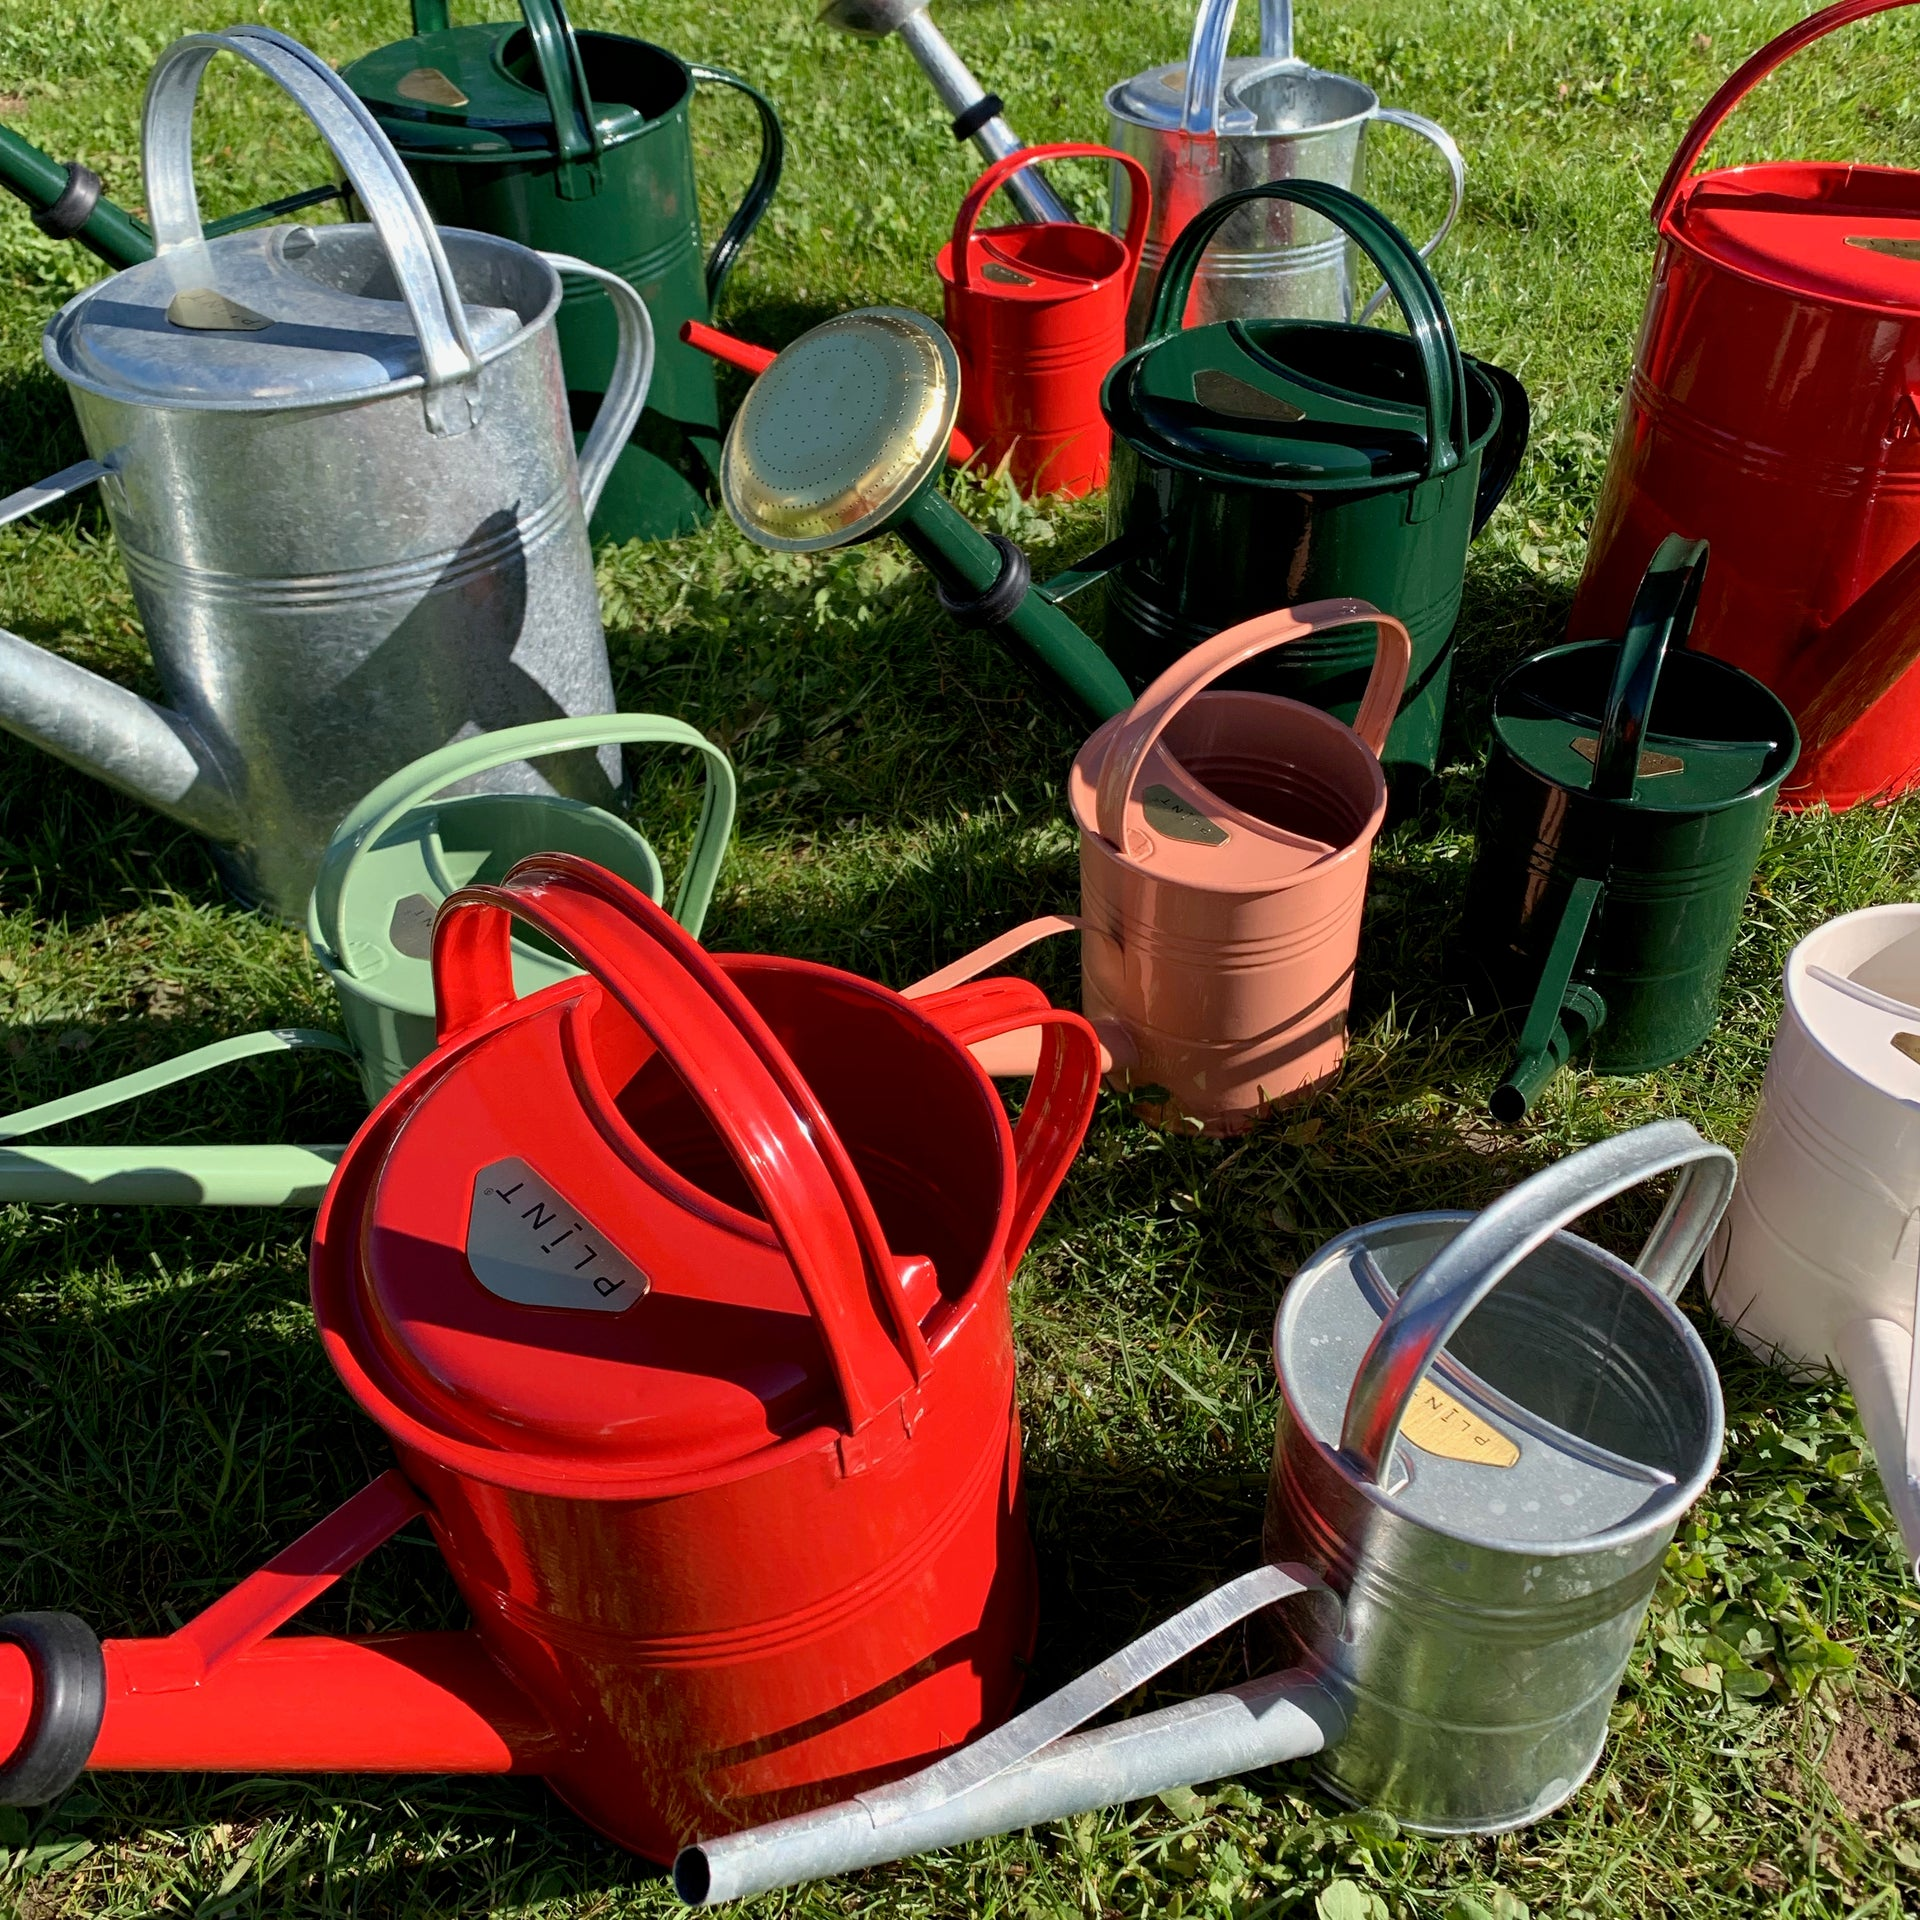 Watering can 1,5 liter red - available end of September '19